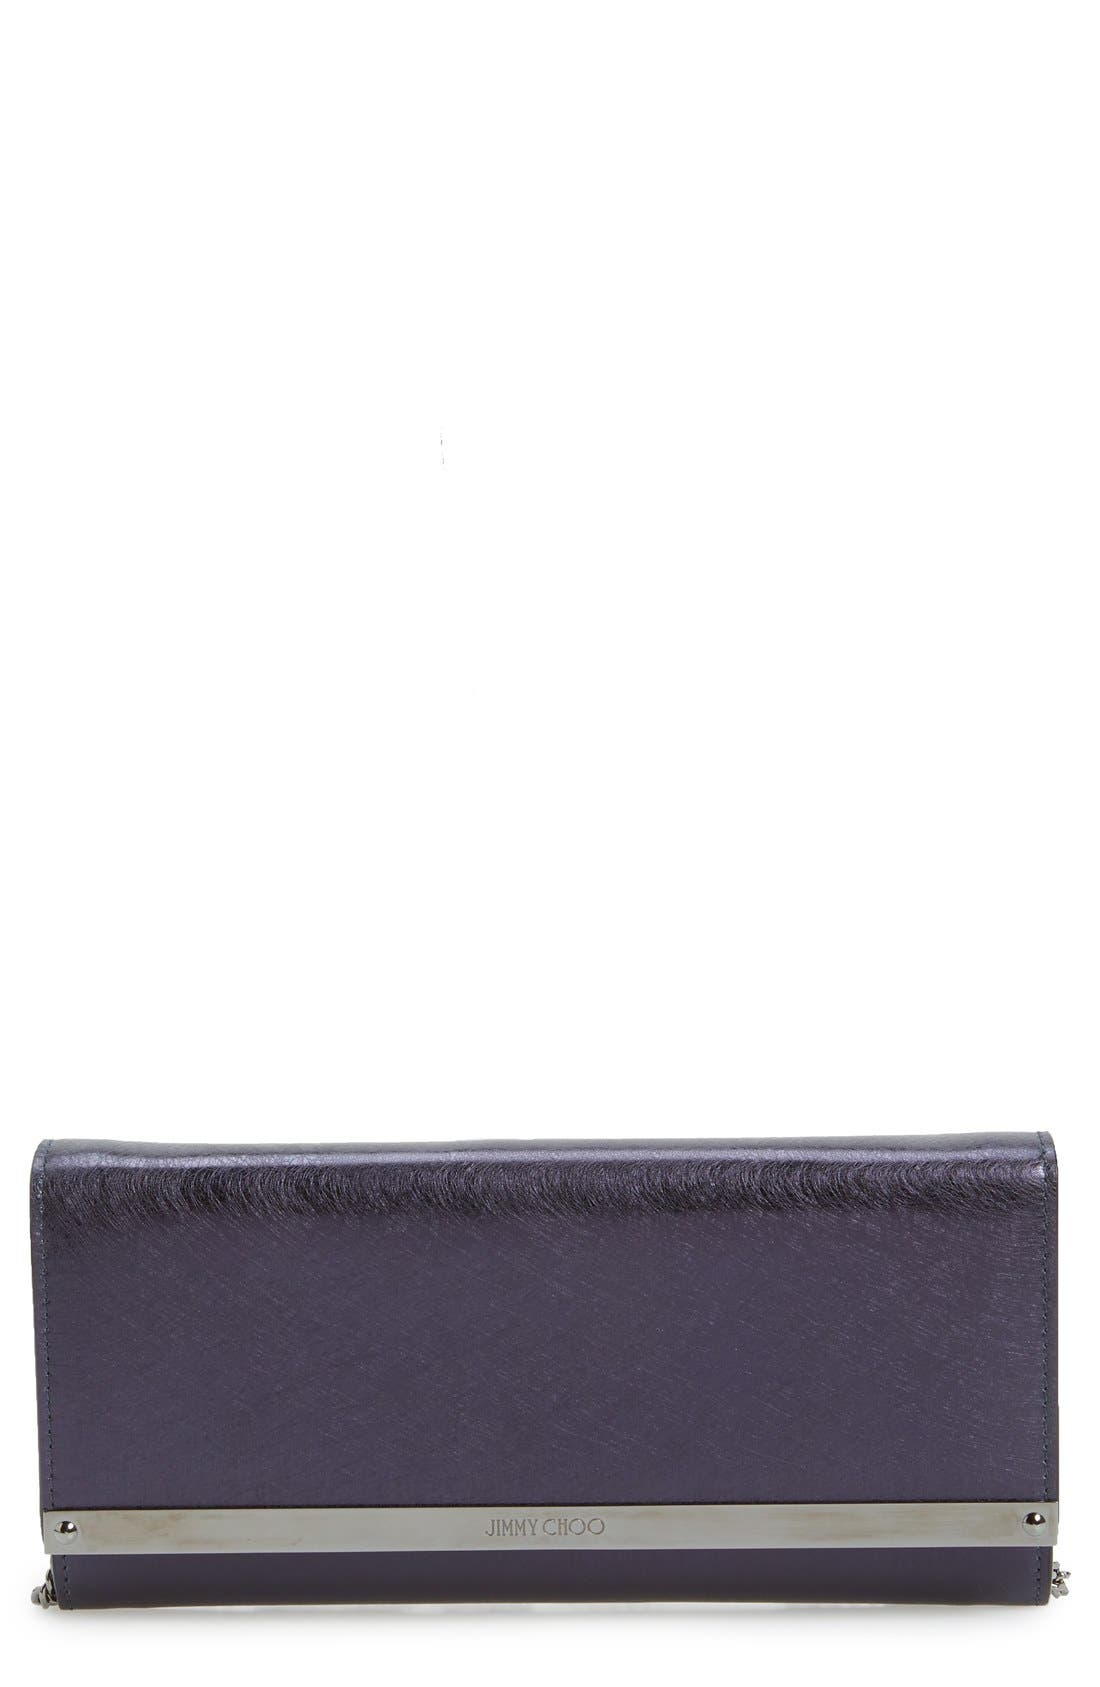 Alternate Image 1 Selected - Jimmy Choo 'Milla' Etched Metallic Spazzolato Leather Flap Clutch